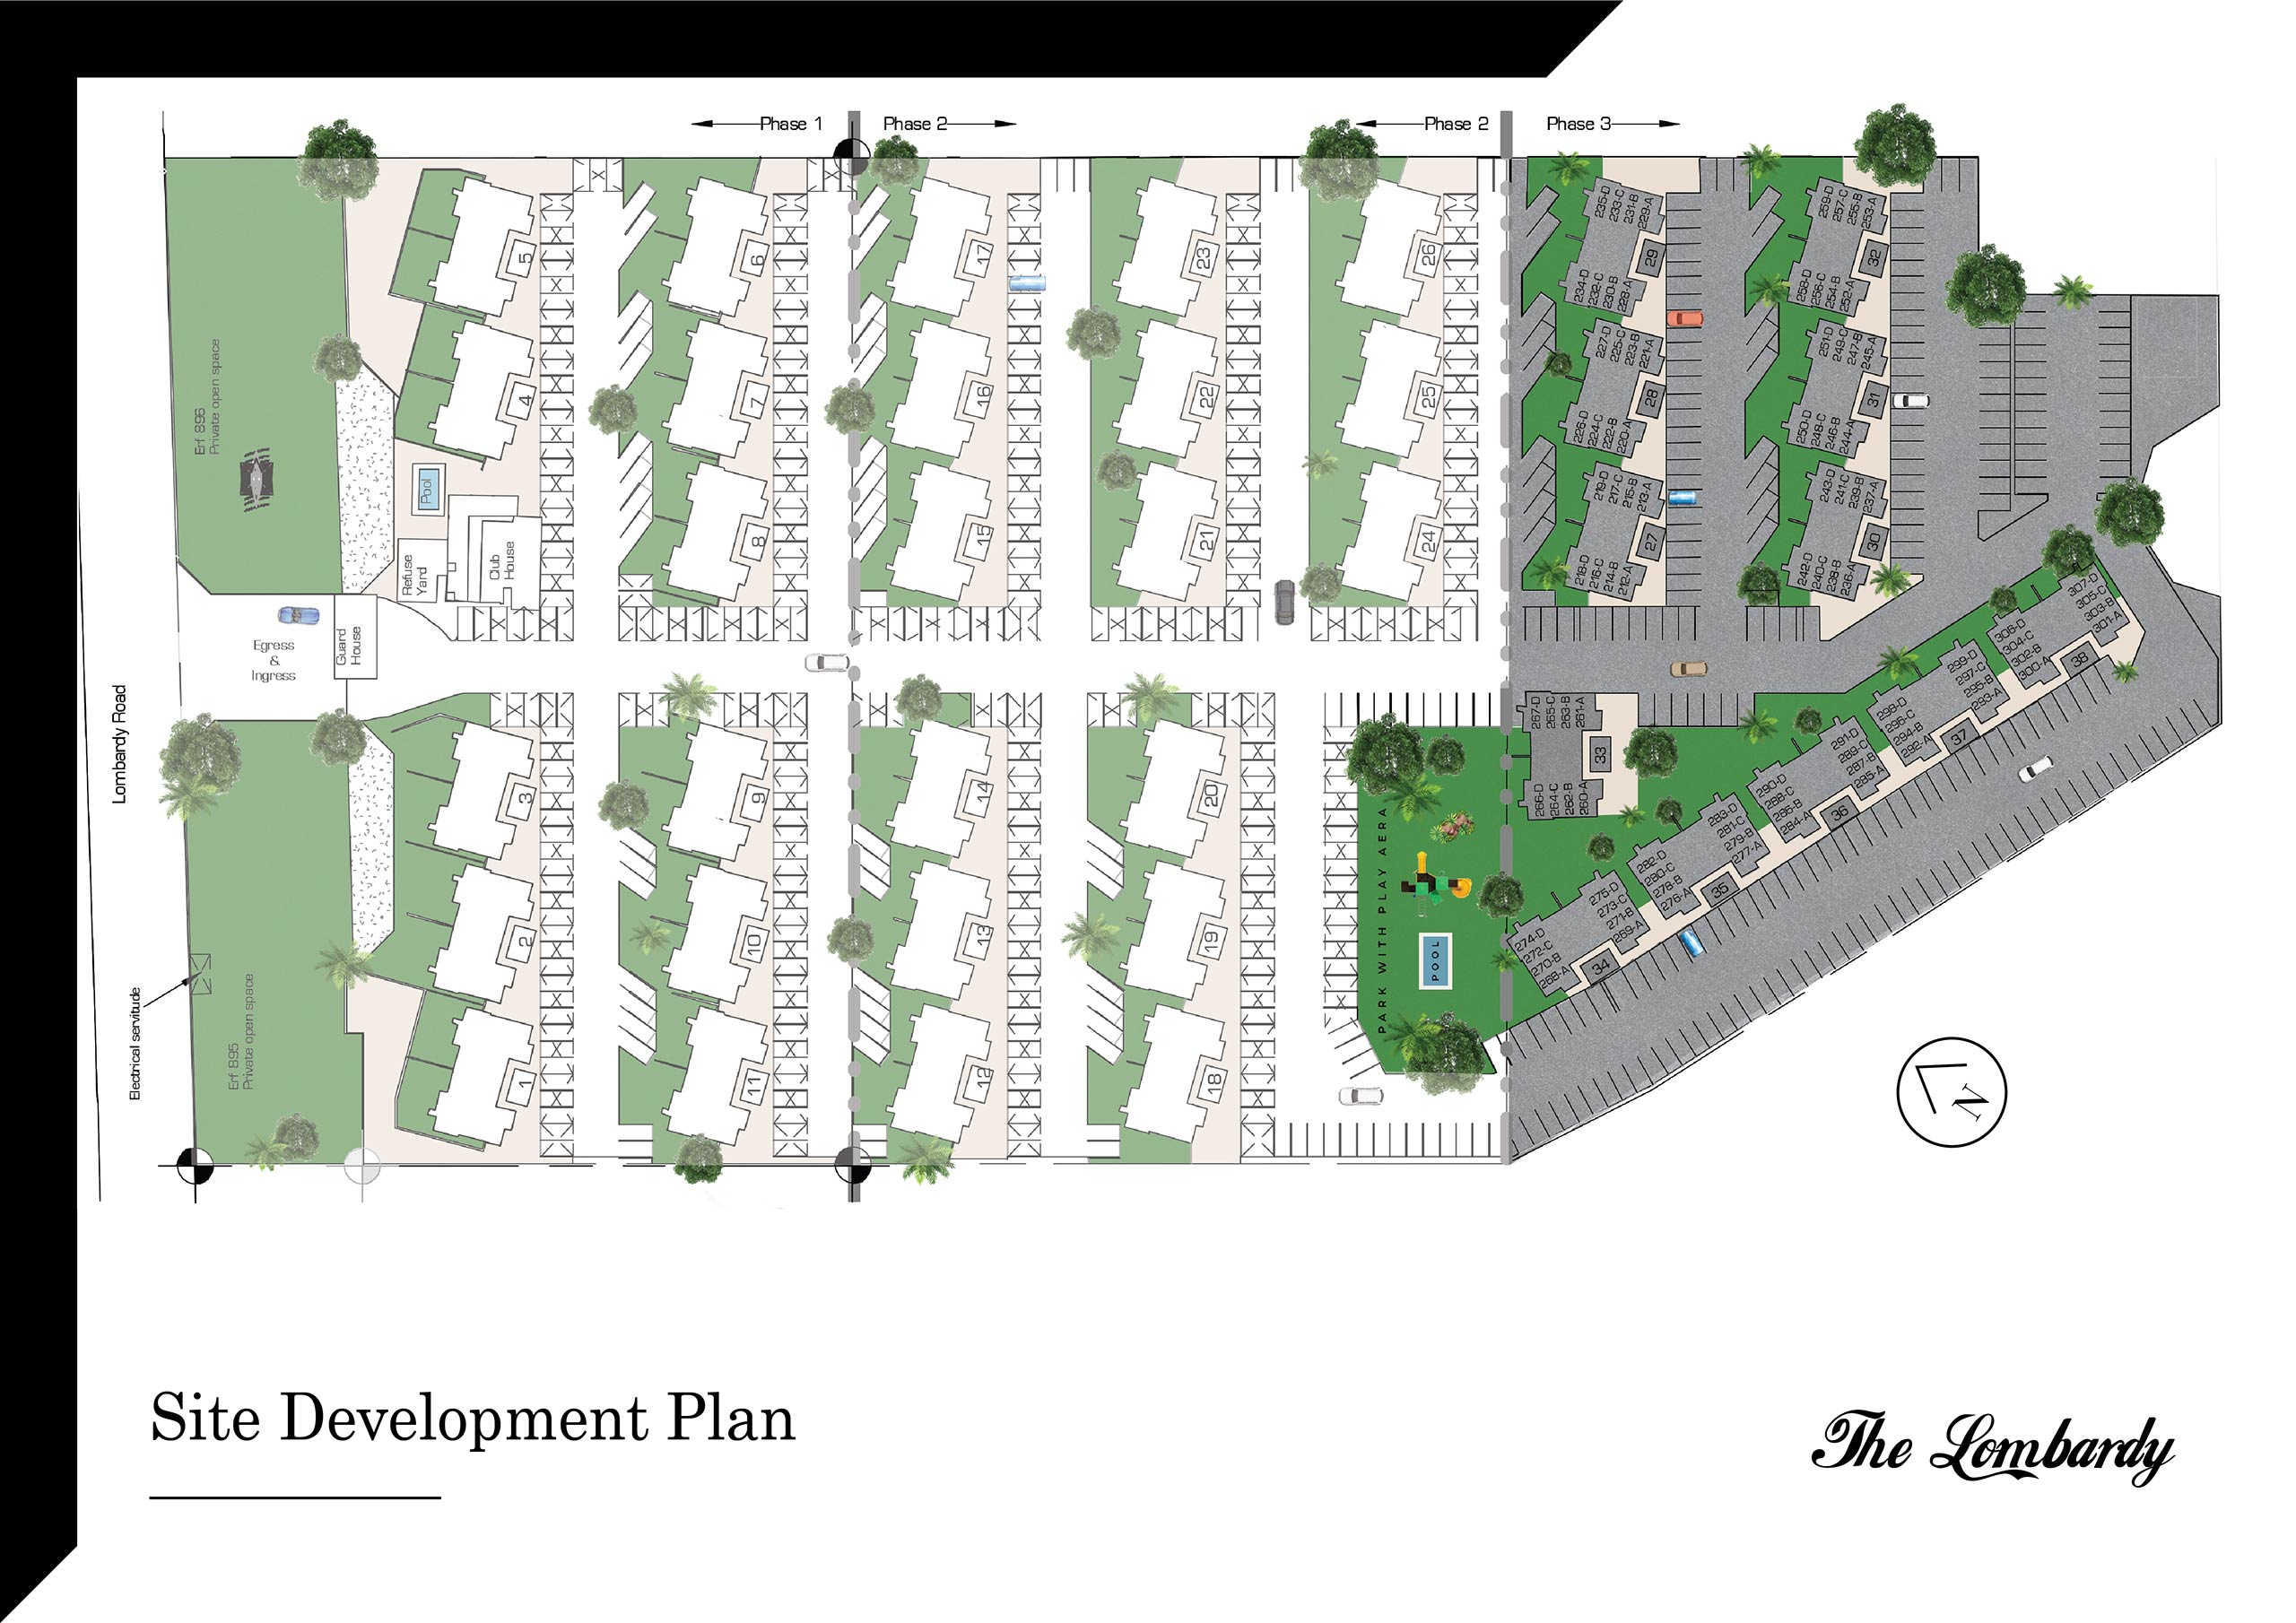 Site Development Plan at The Lombardy